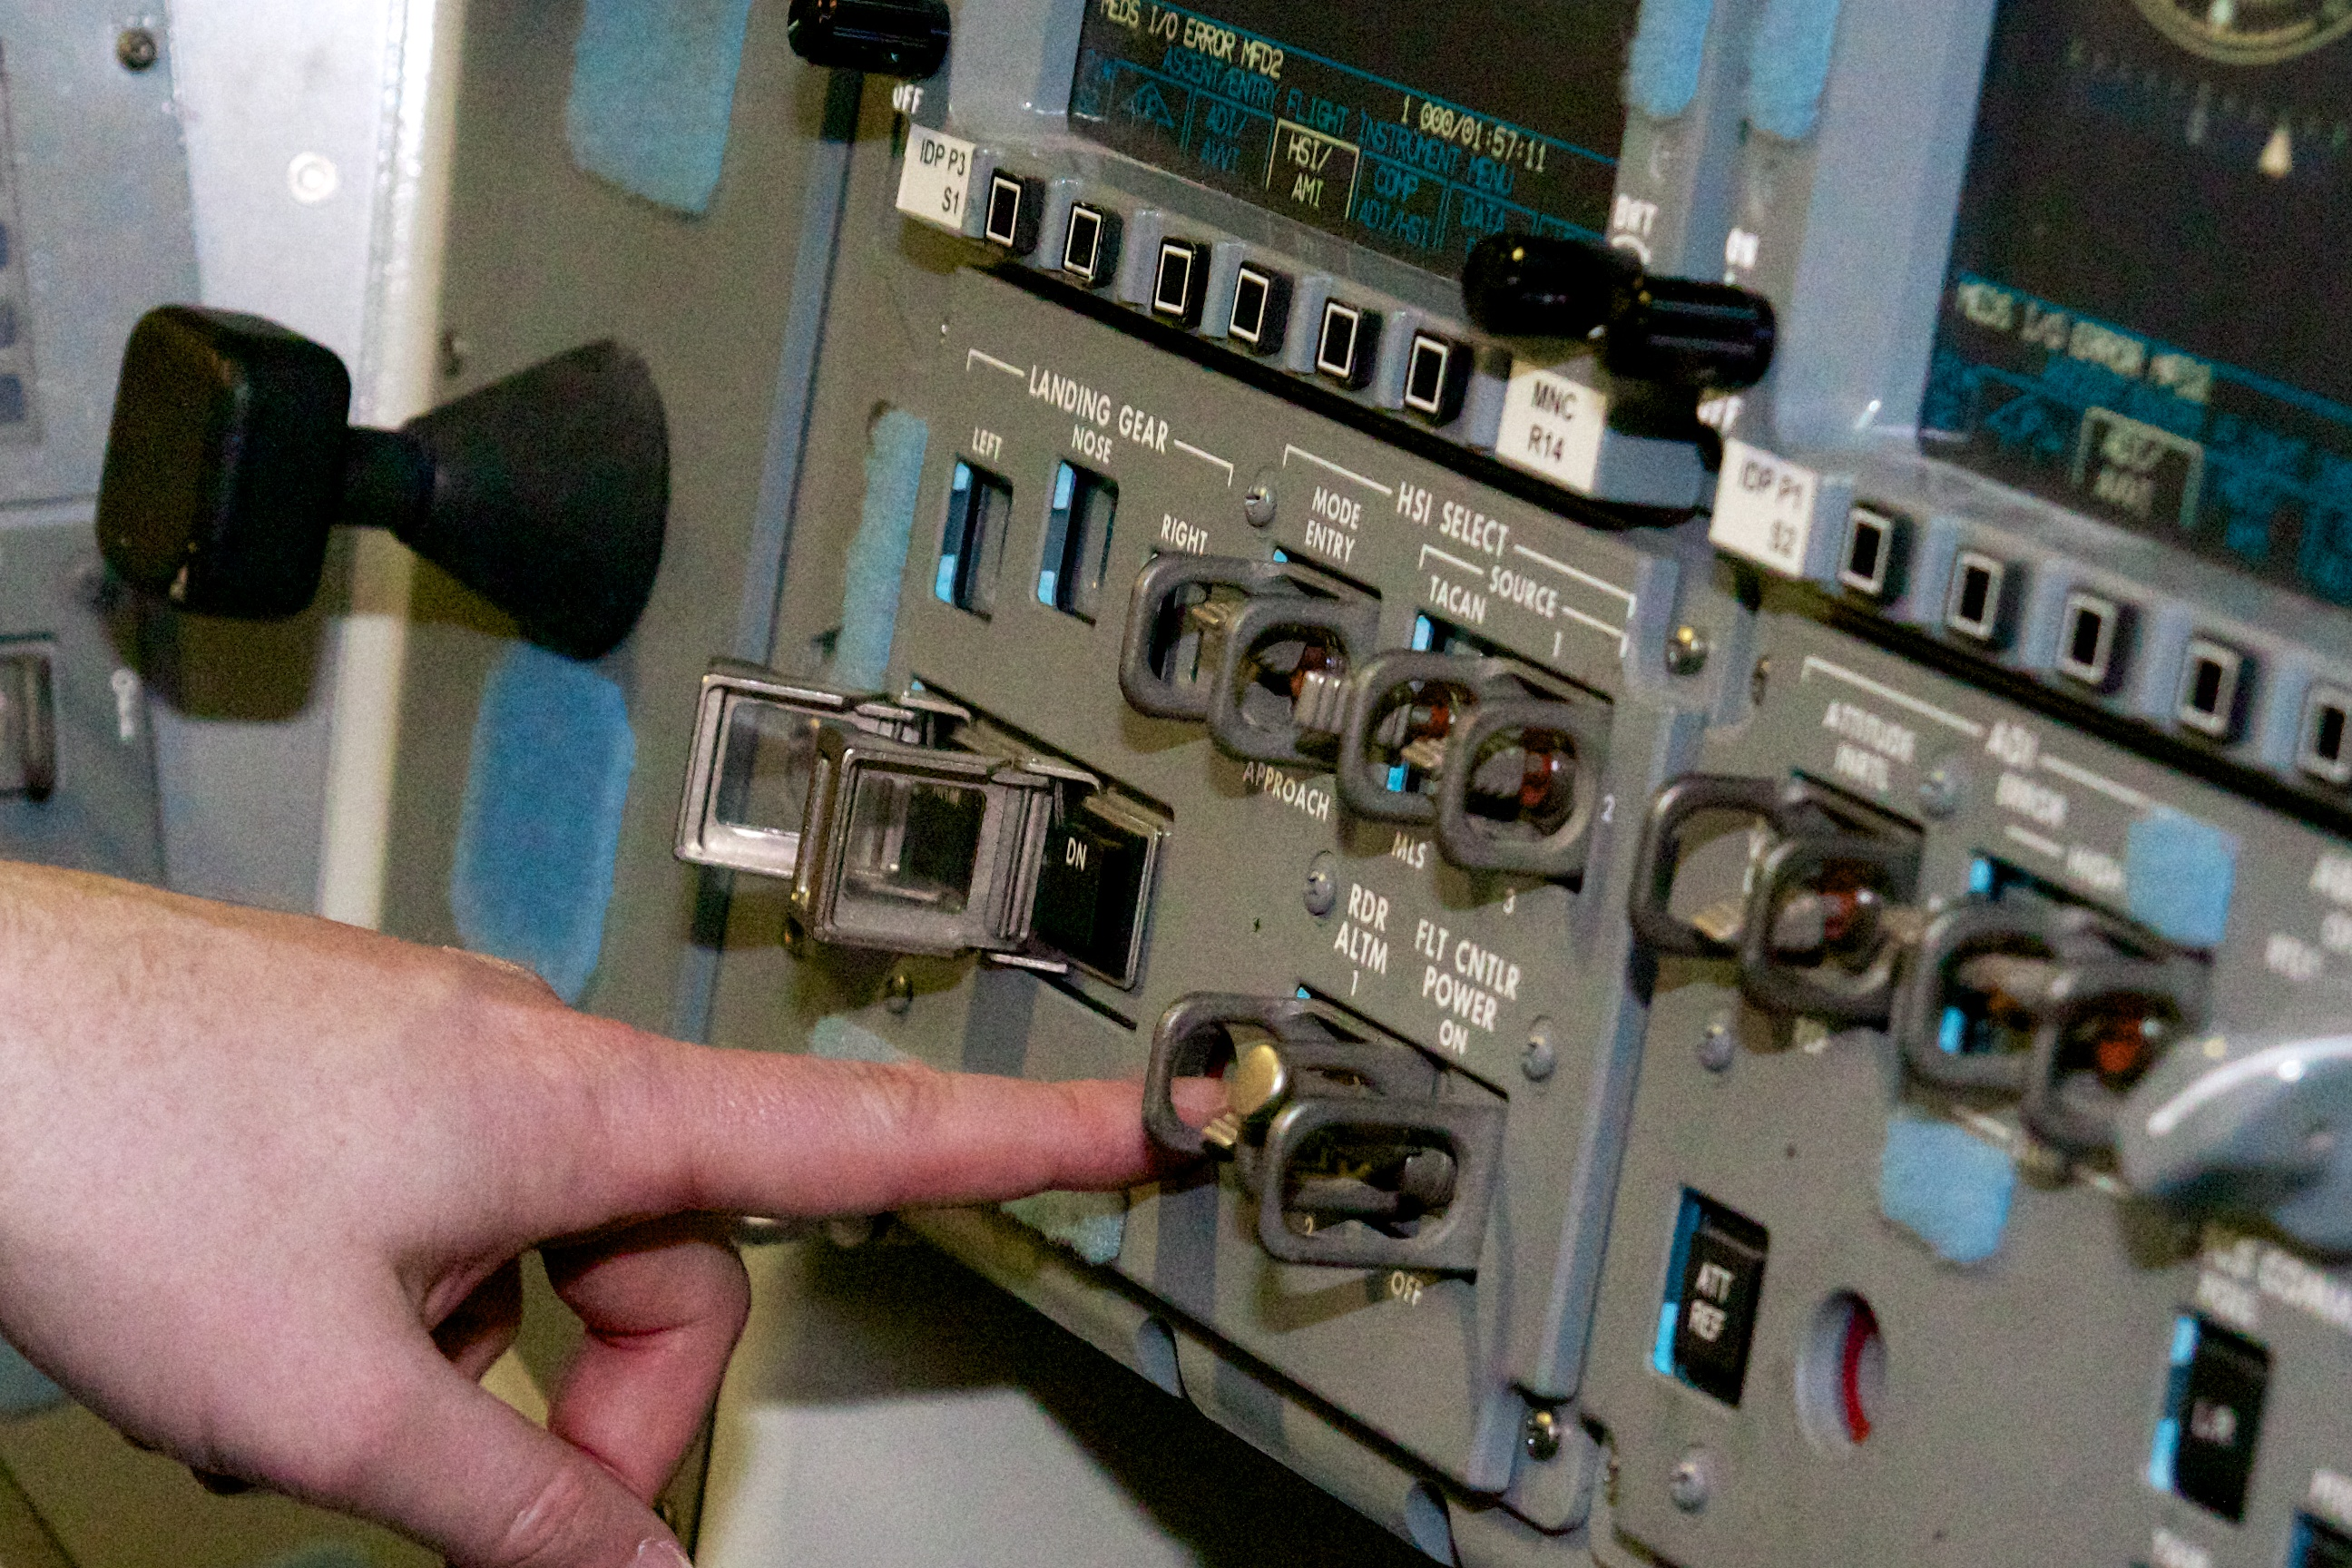 2006 Gm Radio Wiring Diagram The Audacious Rescue Plan That Might Have Saved Space